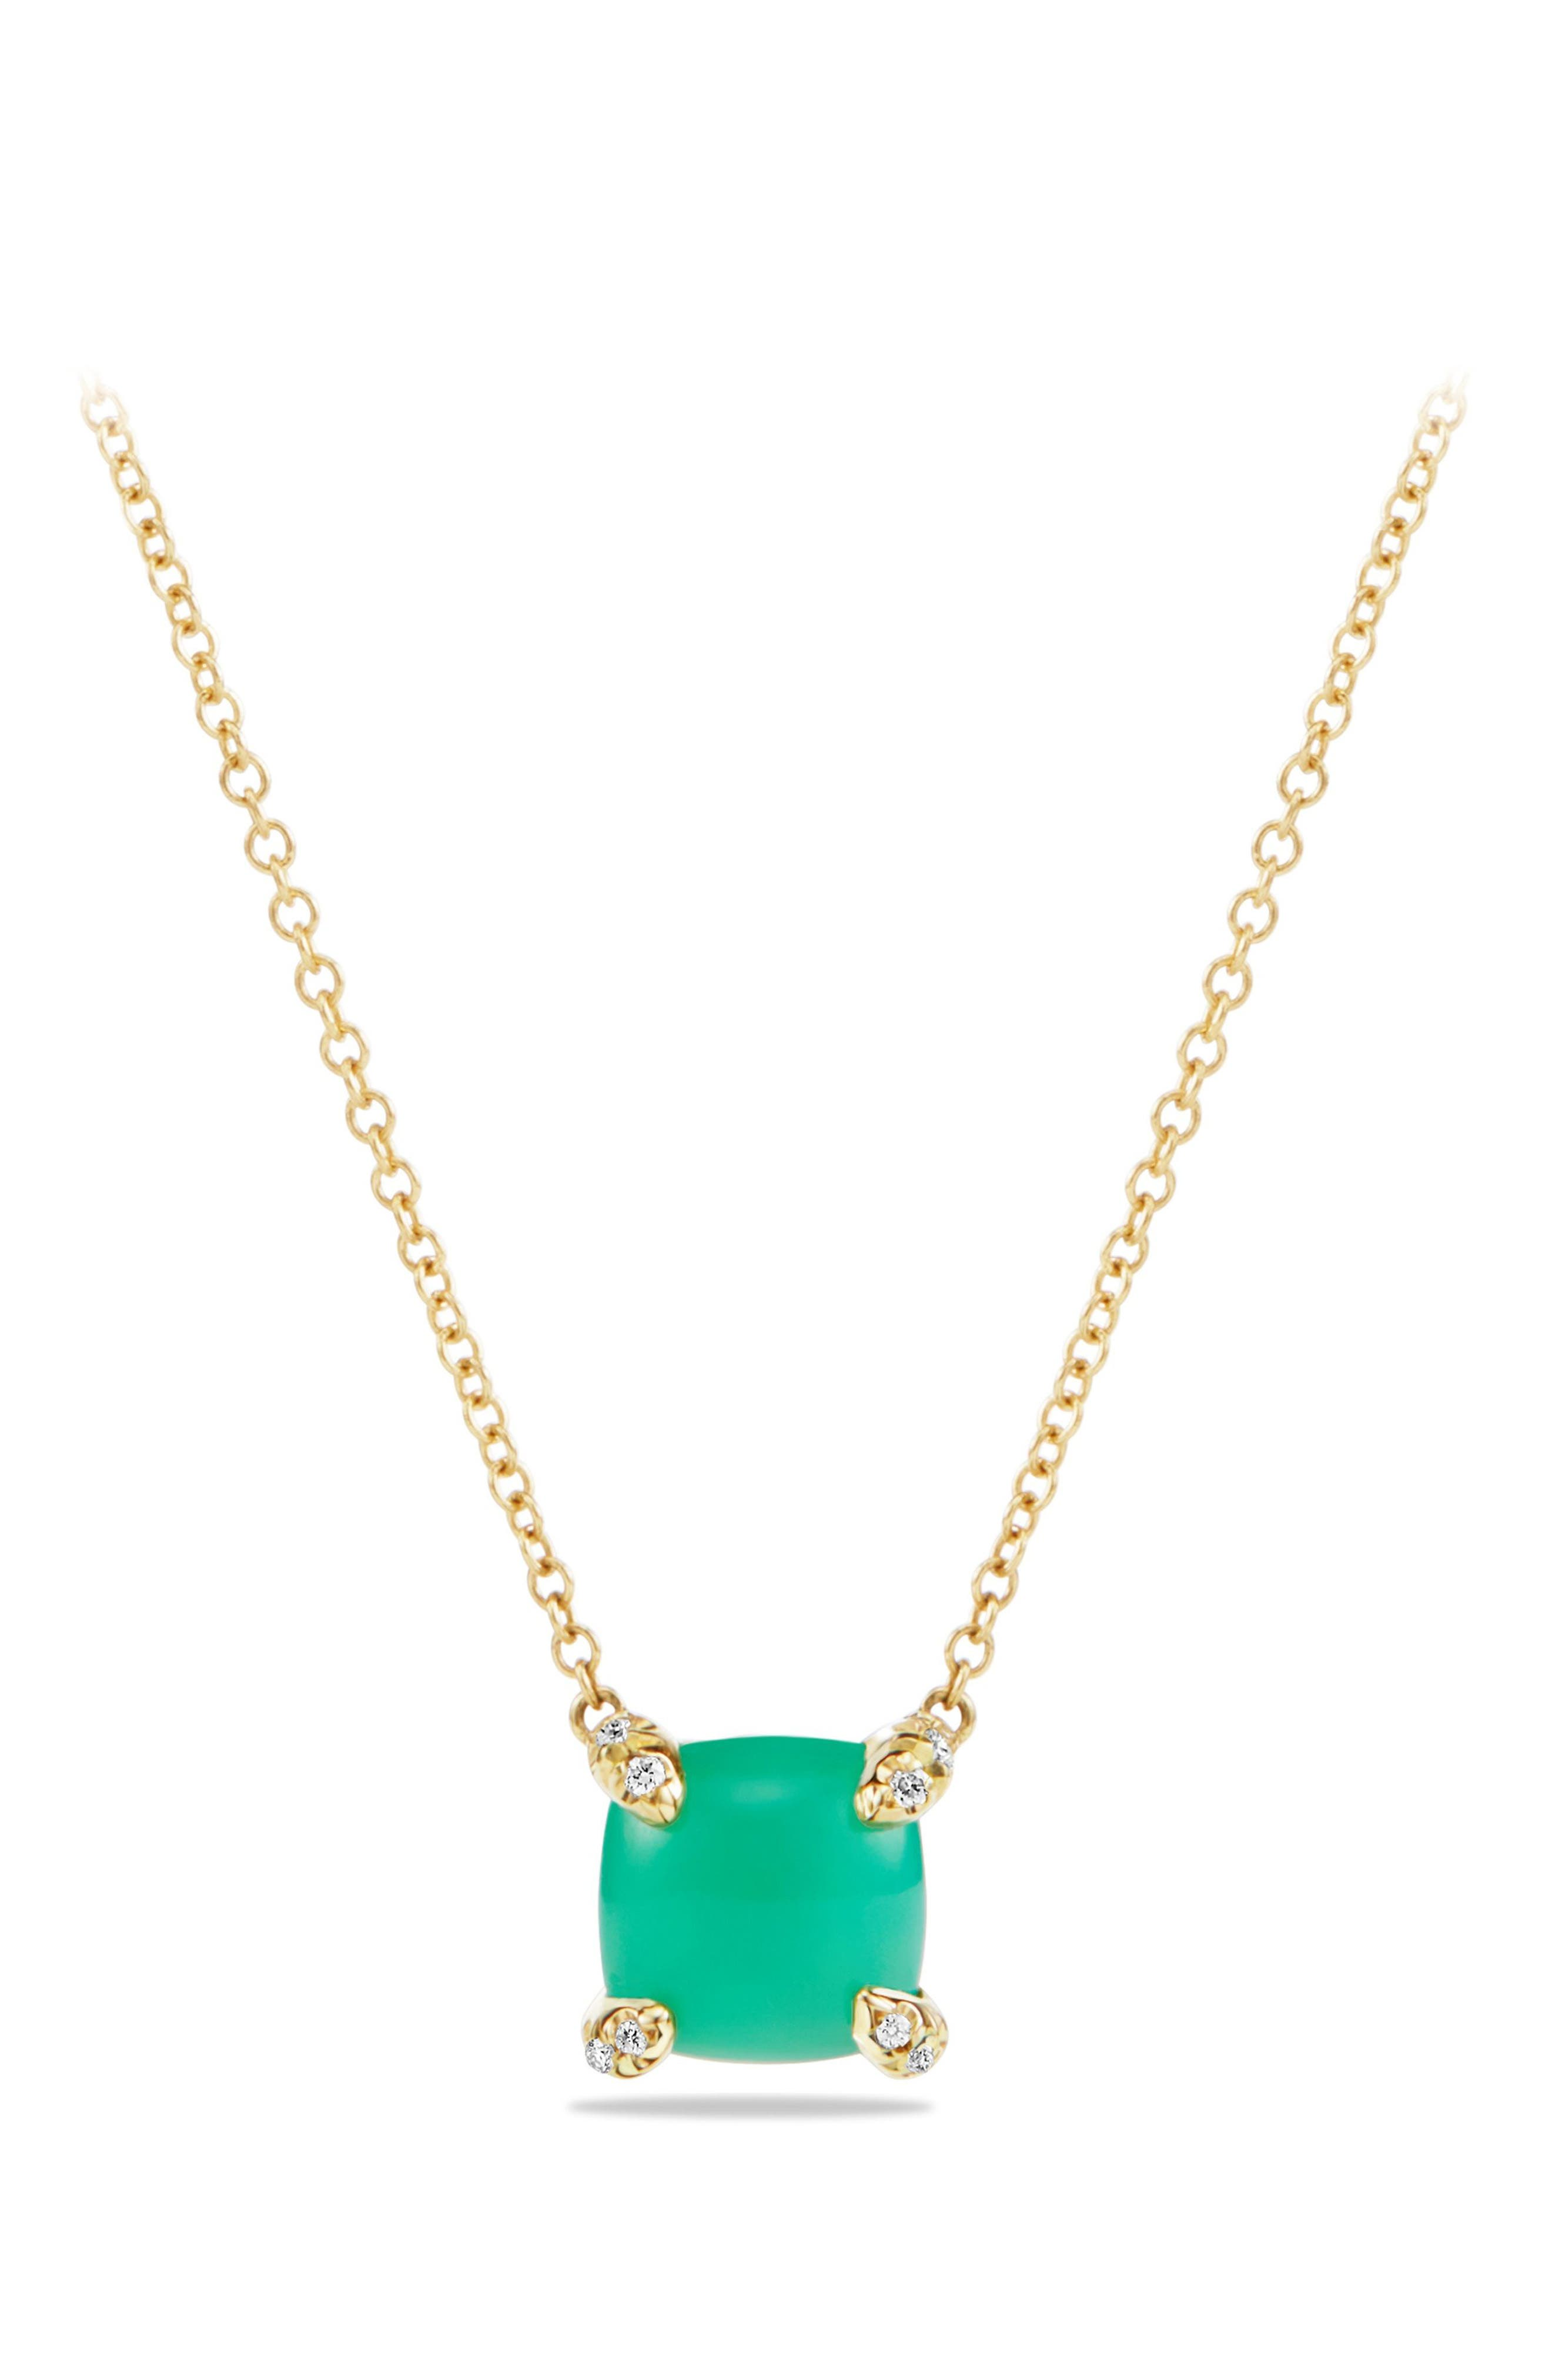 David Yurman 'Châtelaine' Pendant Necklace with Semiprecious Stone and Diamonds in 18K Gold